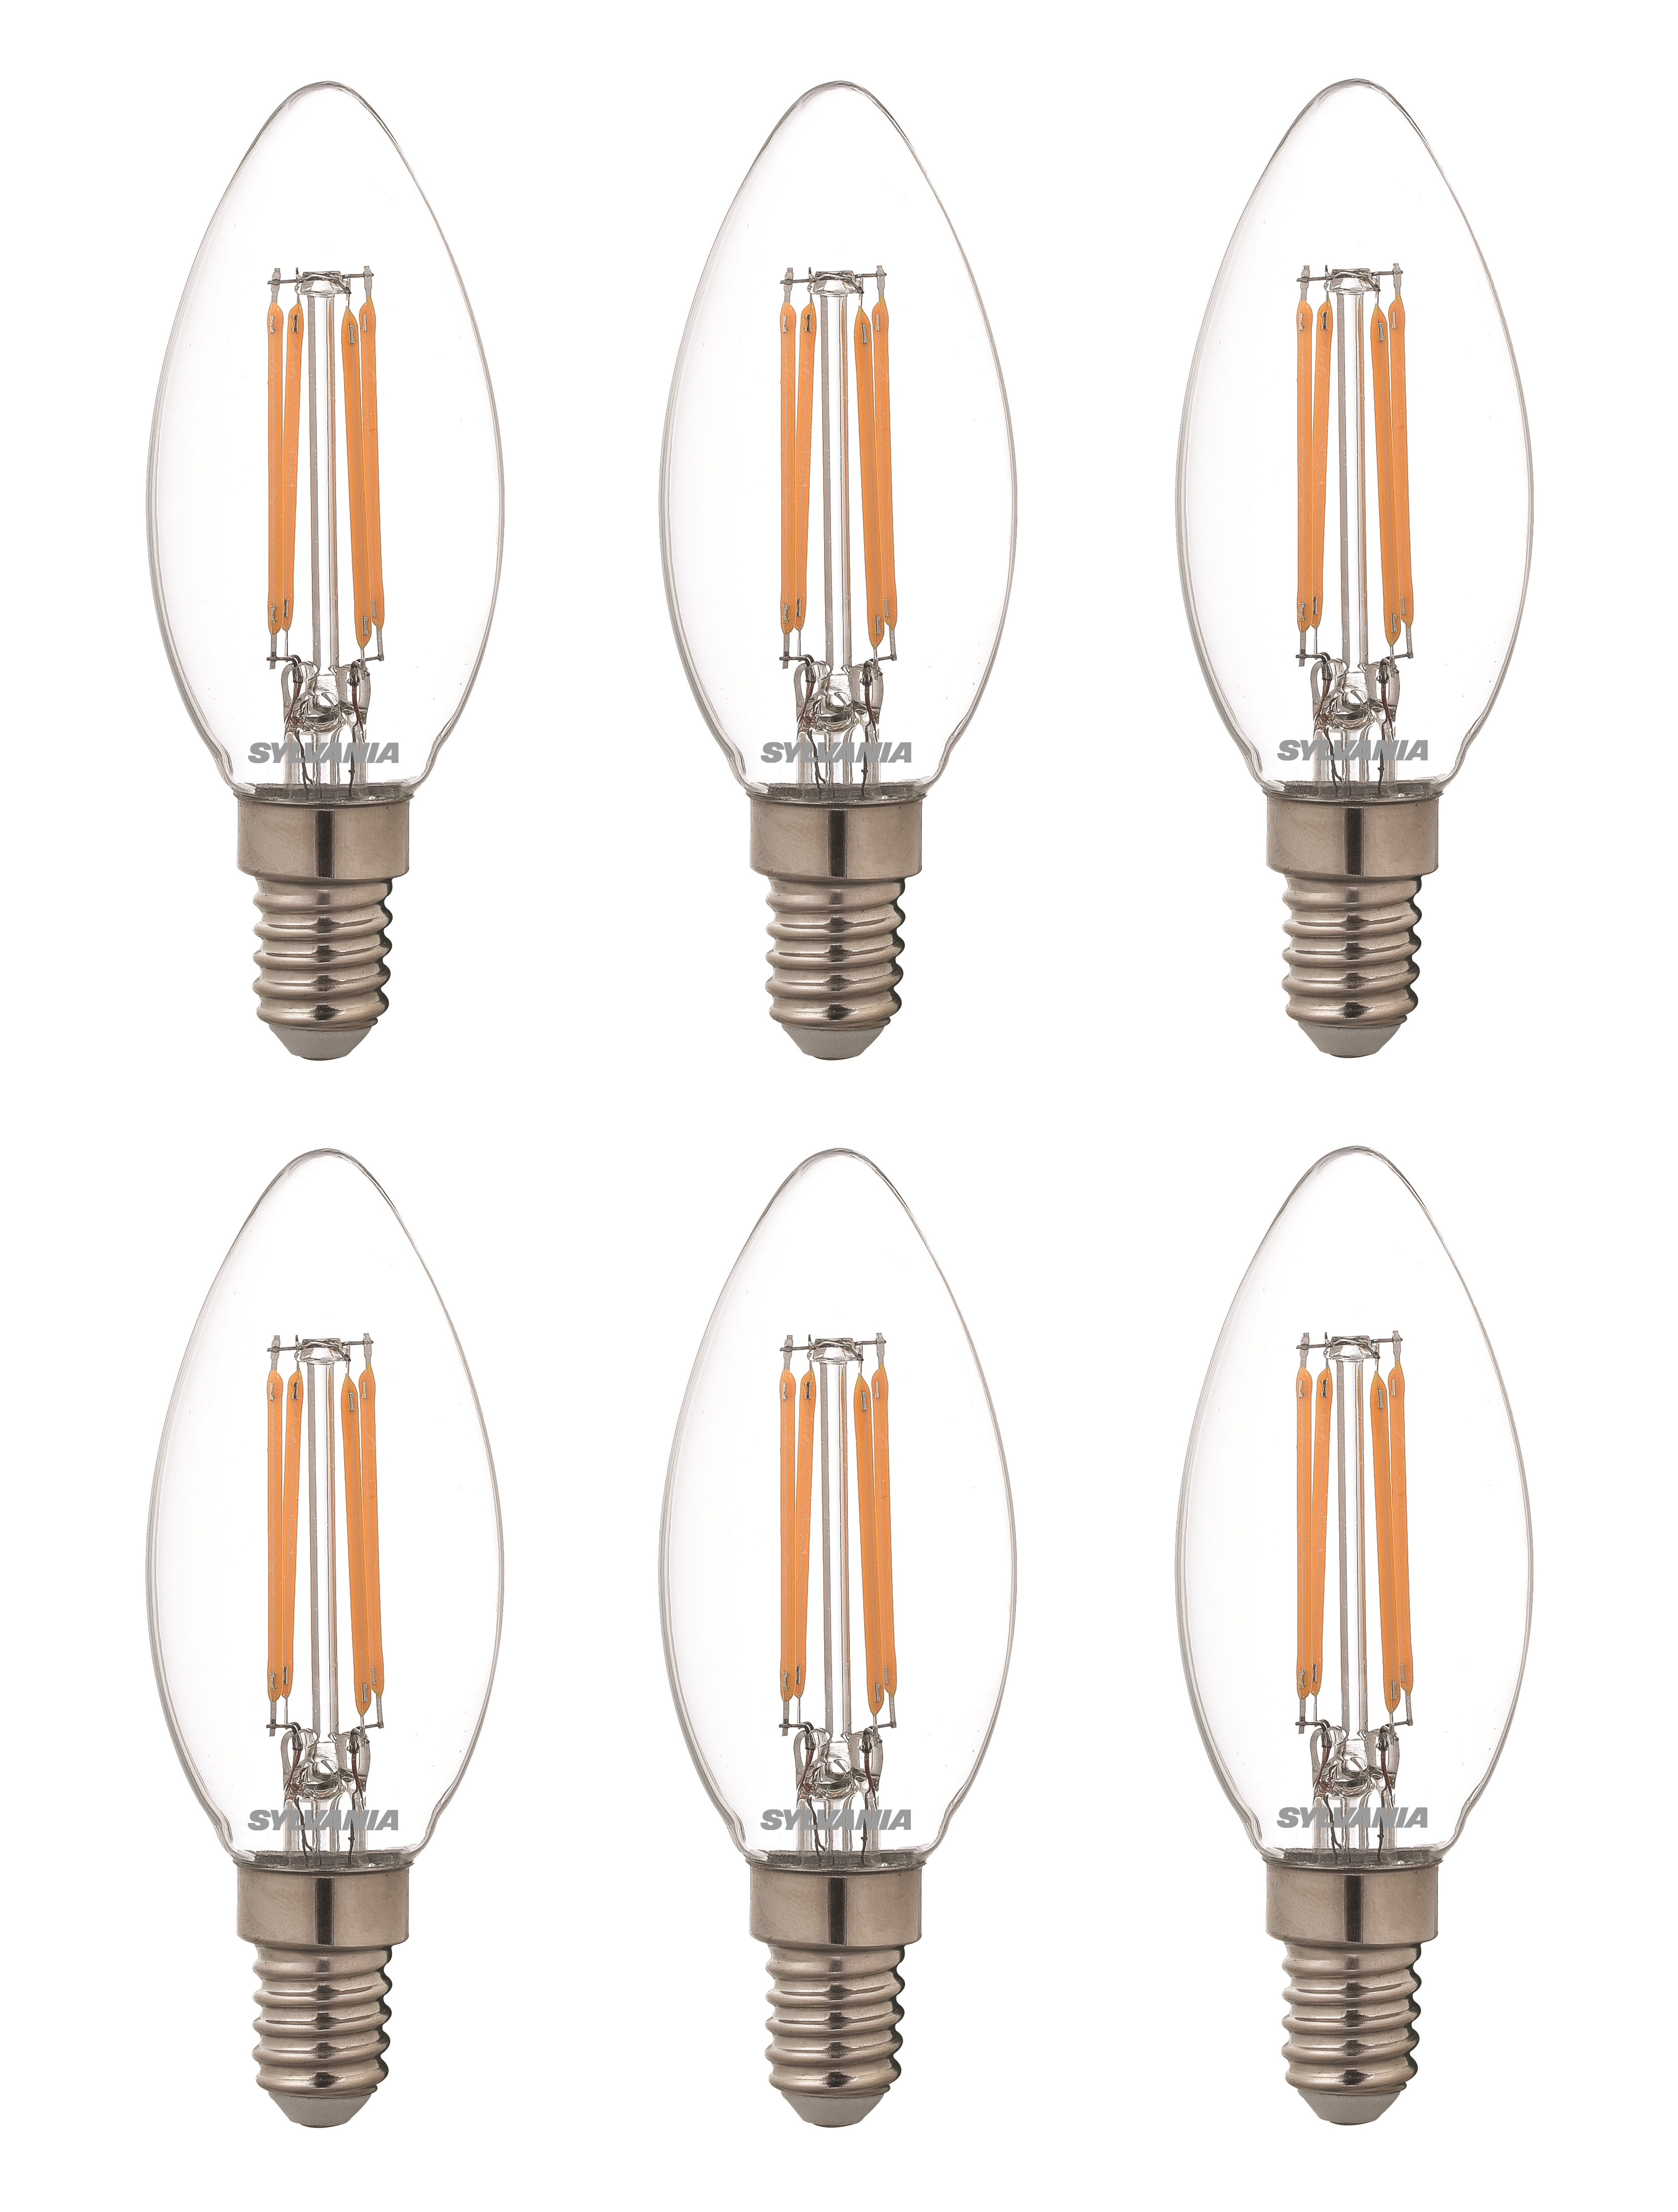 6x Sylvania dimmable LED candle light bulb E14 SES 4.5W = 40W 470lm warm white Thumbnail 1